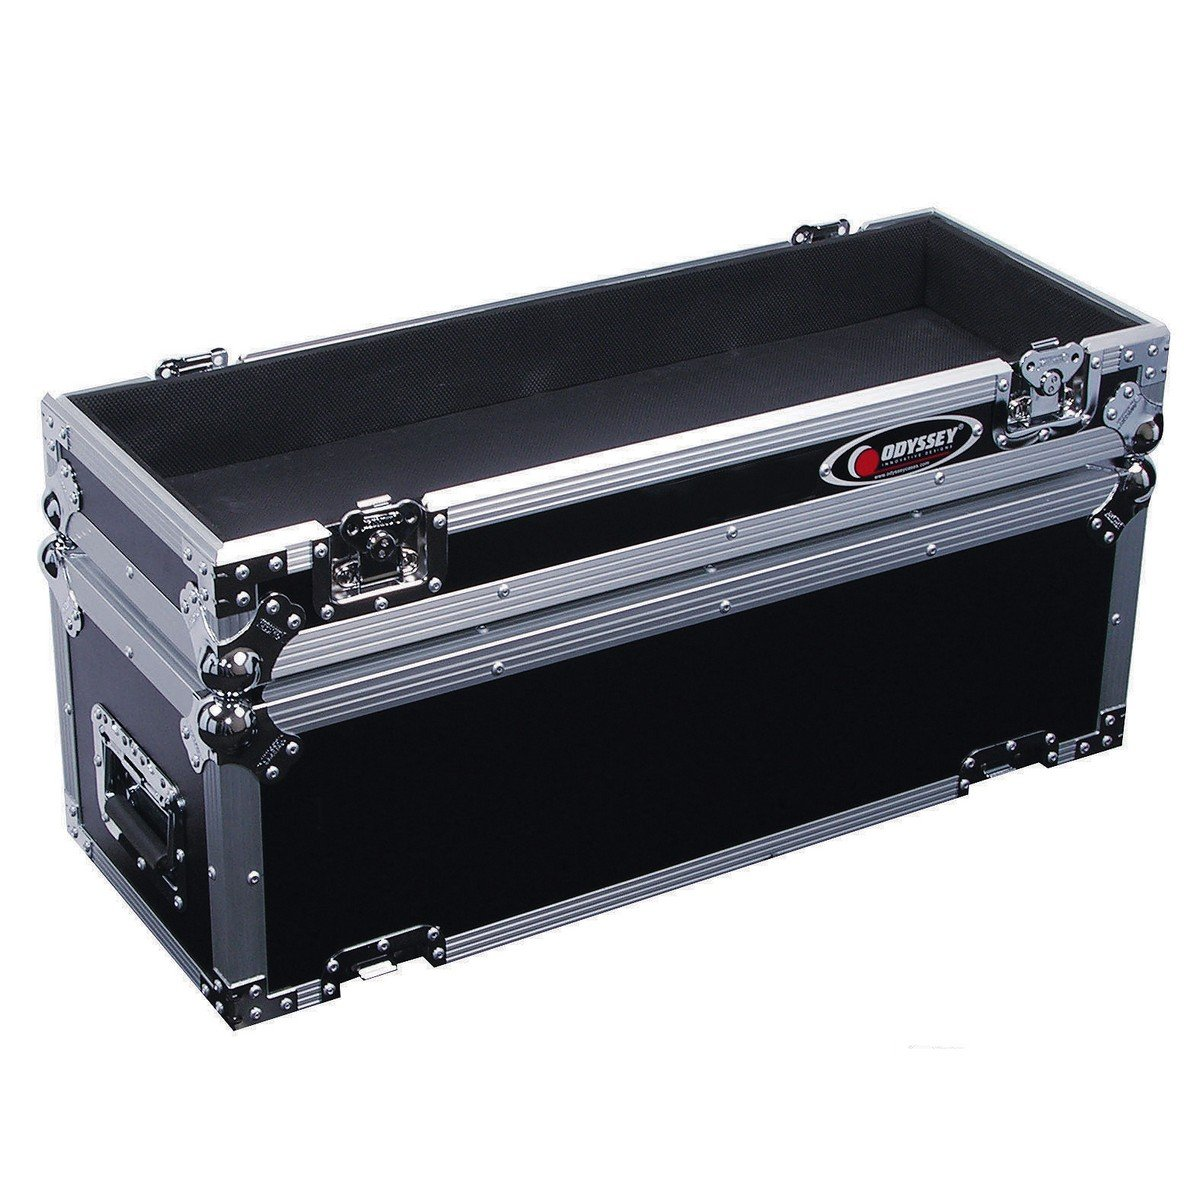 Odyssey Cases FZGAMPHEAD1 | Guitar Amp Case Up to 10x12x30.25inches by Odyssey